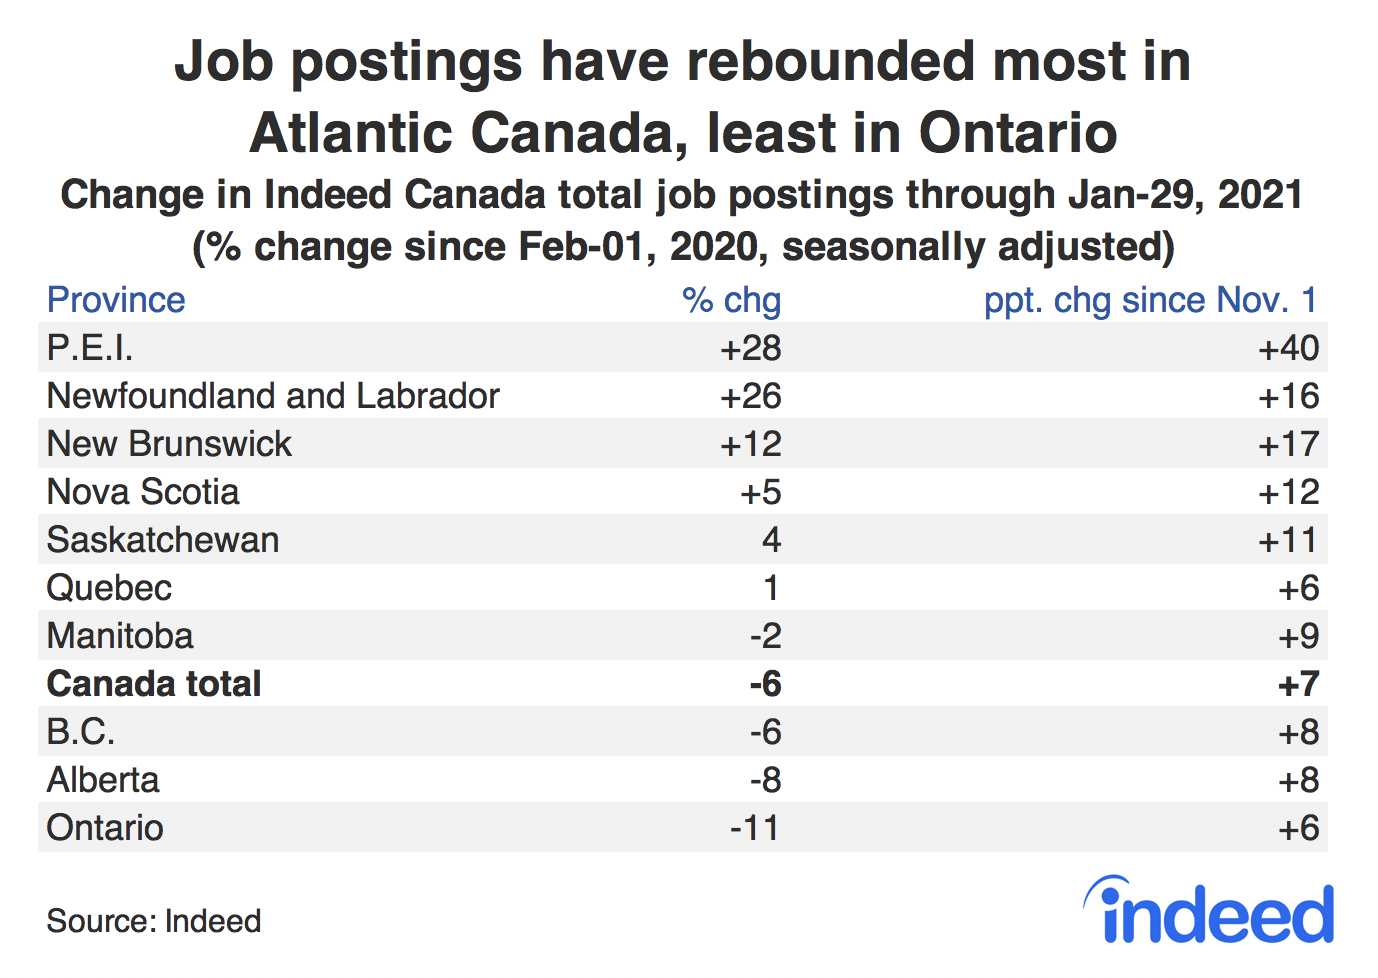 Table showing job postings have rebounded most in Atlantic Canada, least in Ontario